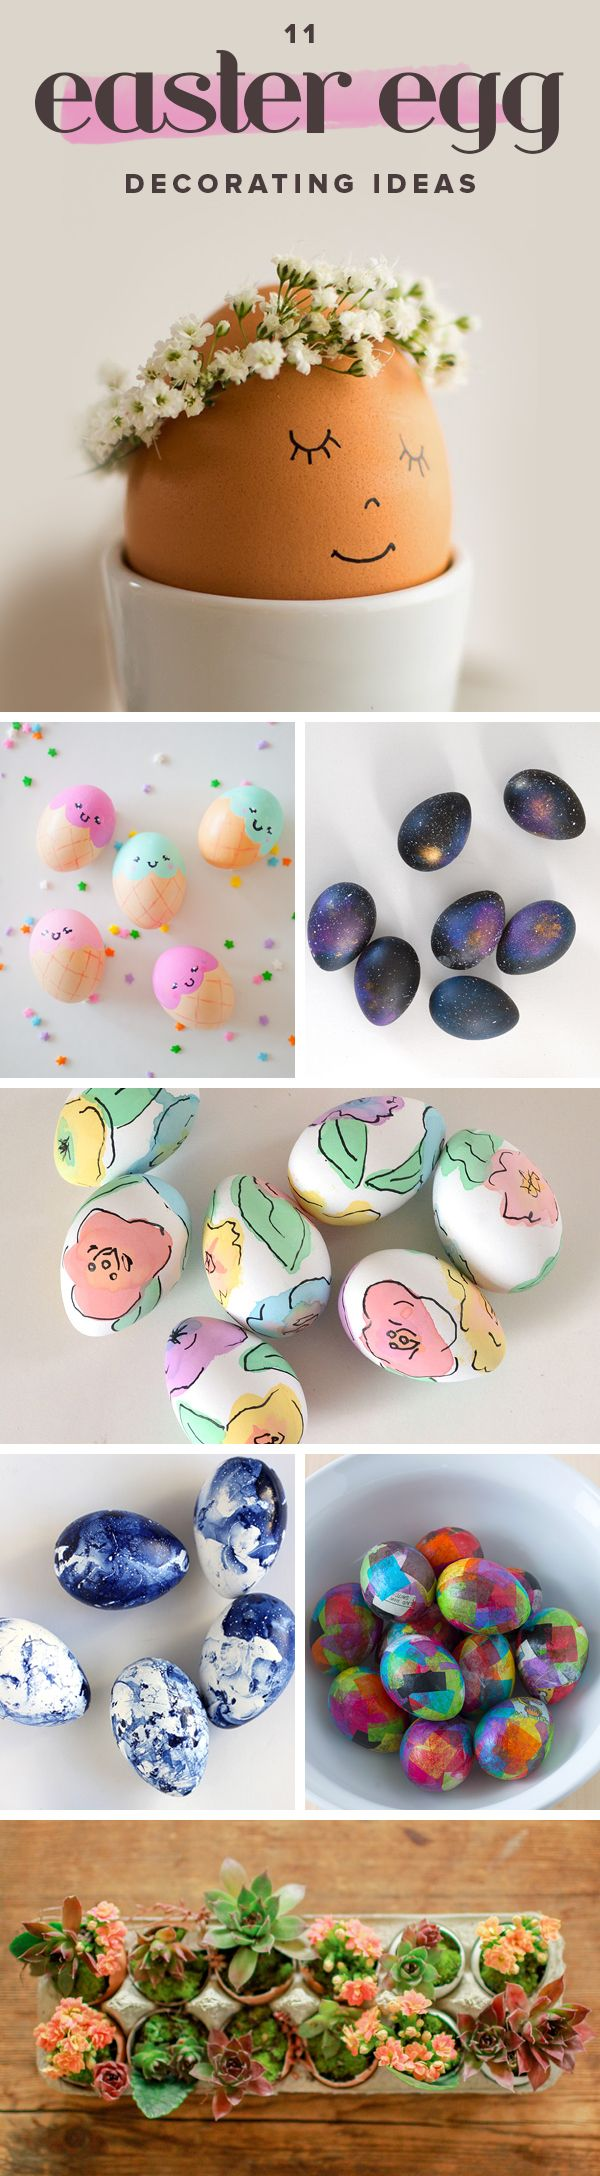 Easter ideas part 3 of 3 real deep stuff - Emoji Easter Eggs Make This Pinterest Worthy Diy Using Only 3 Items